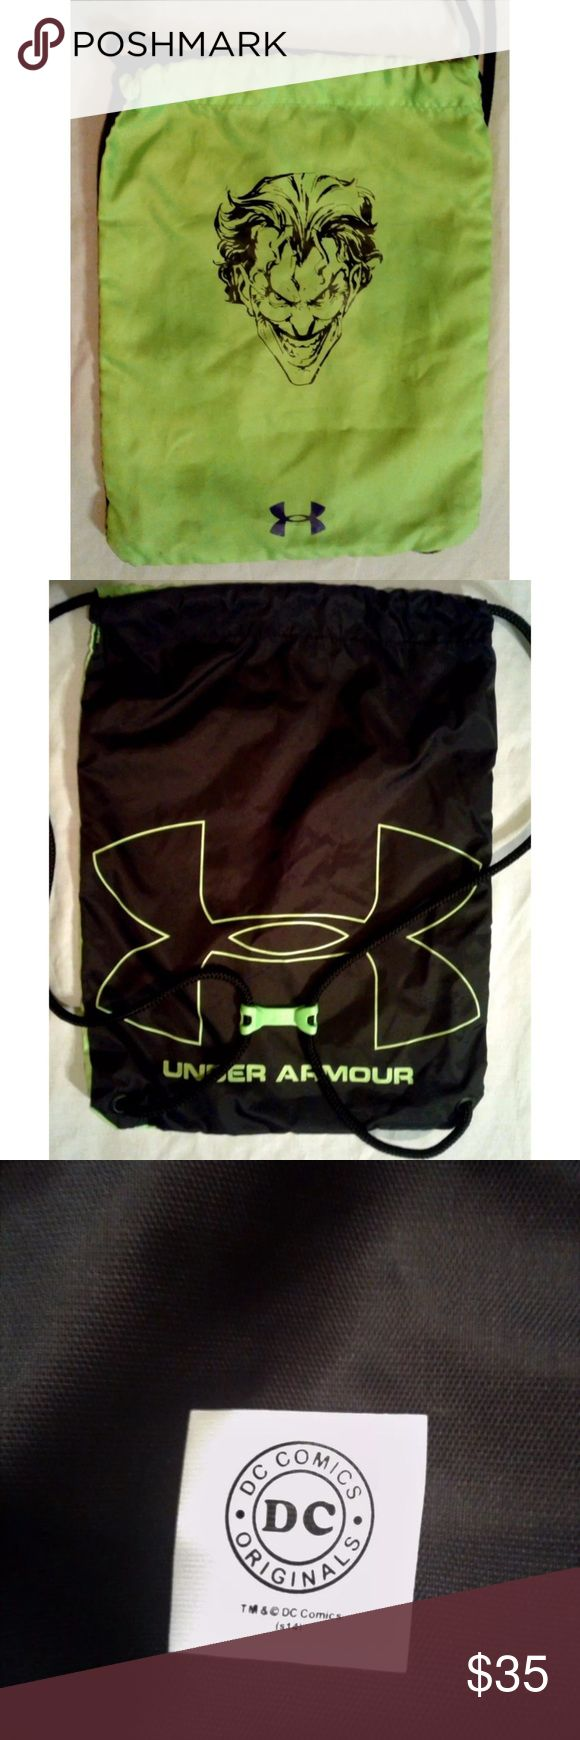 Under Armour Alter Ego Joker Bag For Sale Is An Under Armour Alter Ego Joker Drawstring Bag. This Bag Is In Great Overall Condition With Normal Signs Of Use. No Tears Or Holes.  Gym Bag  If You Have Any Additional Questions, Please Don't Hesitate To Ask. ***Orders placed before 2:00pm (ET) will be shipped the same day Monday-Friday Under Armour Bags